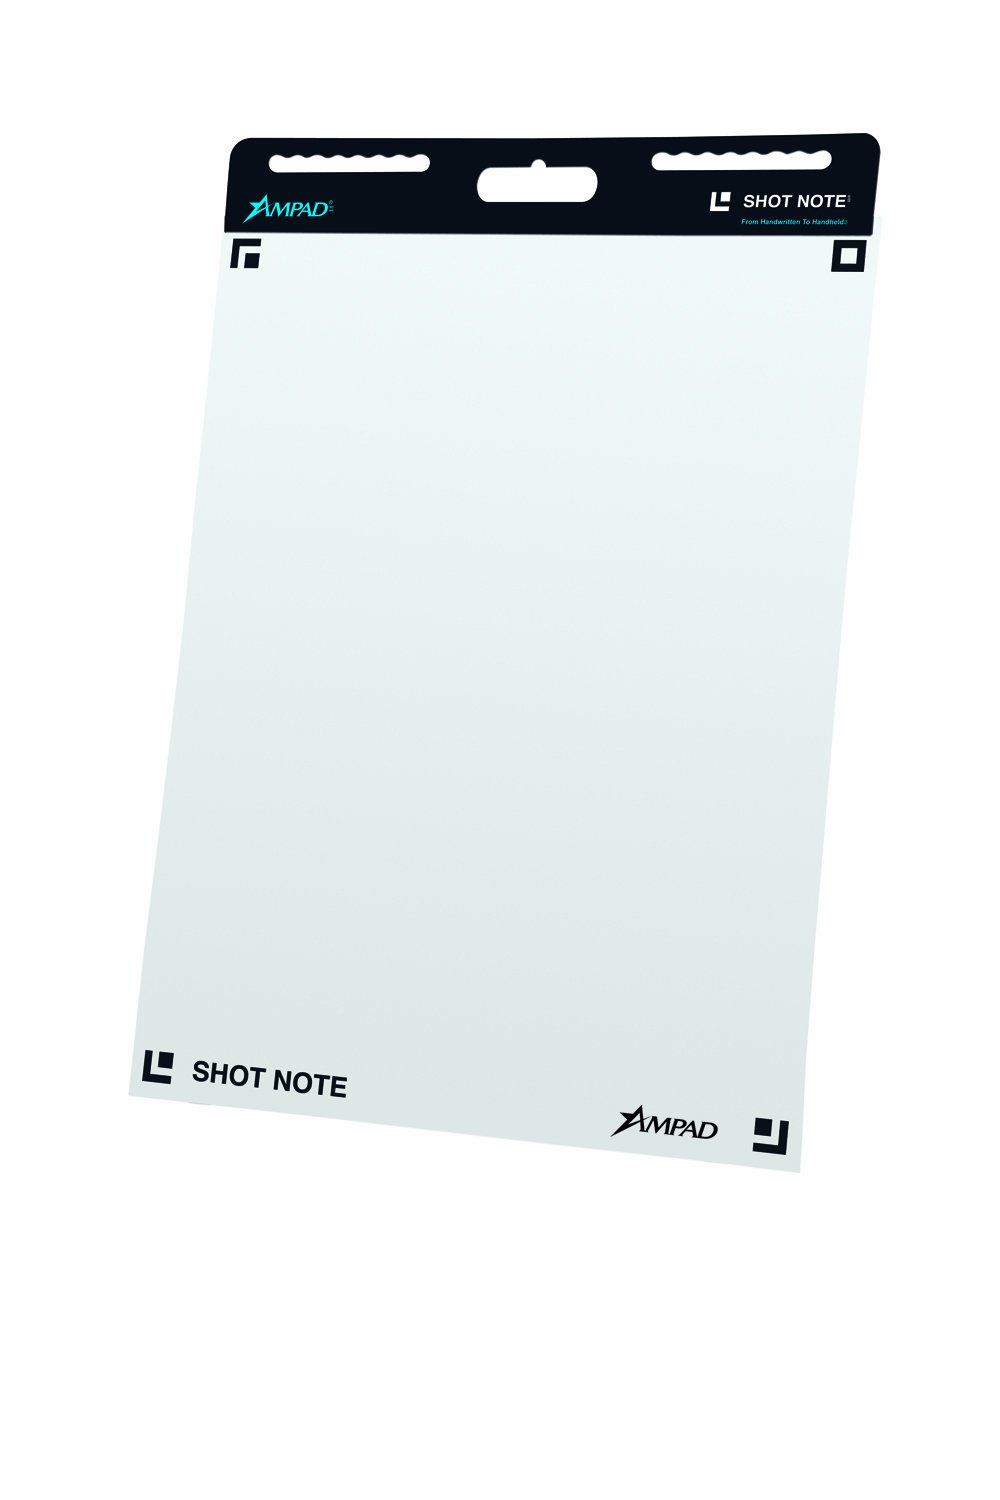 Ampad ShotNote Self Adhesive Easel Pad 23 1/4 x 31 Inches, Unruled, 25 Sheets Per Pad, 2 Pack (24-111)